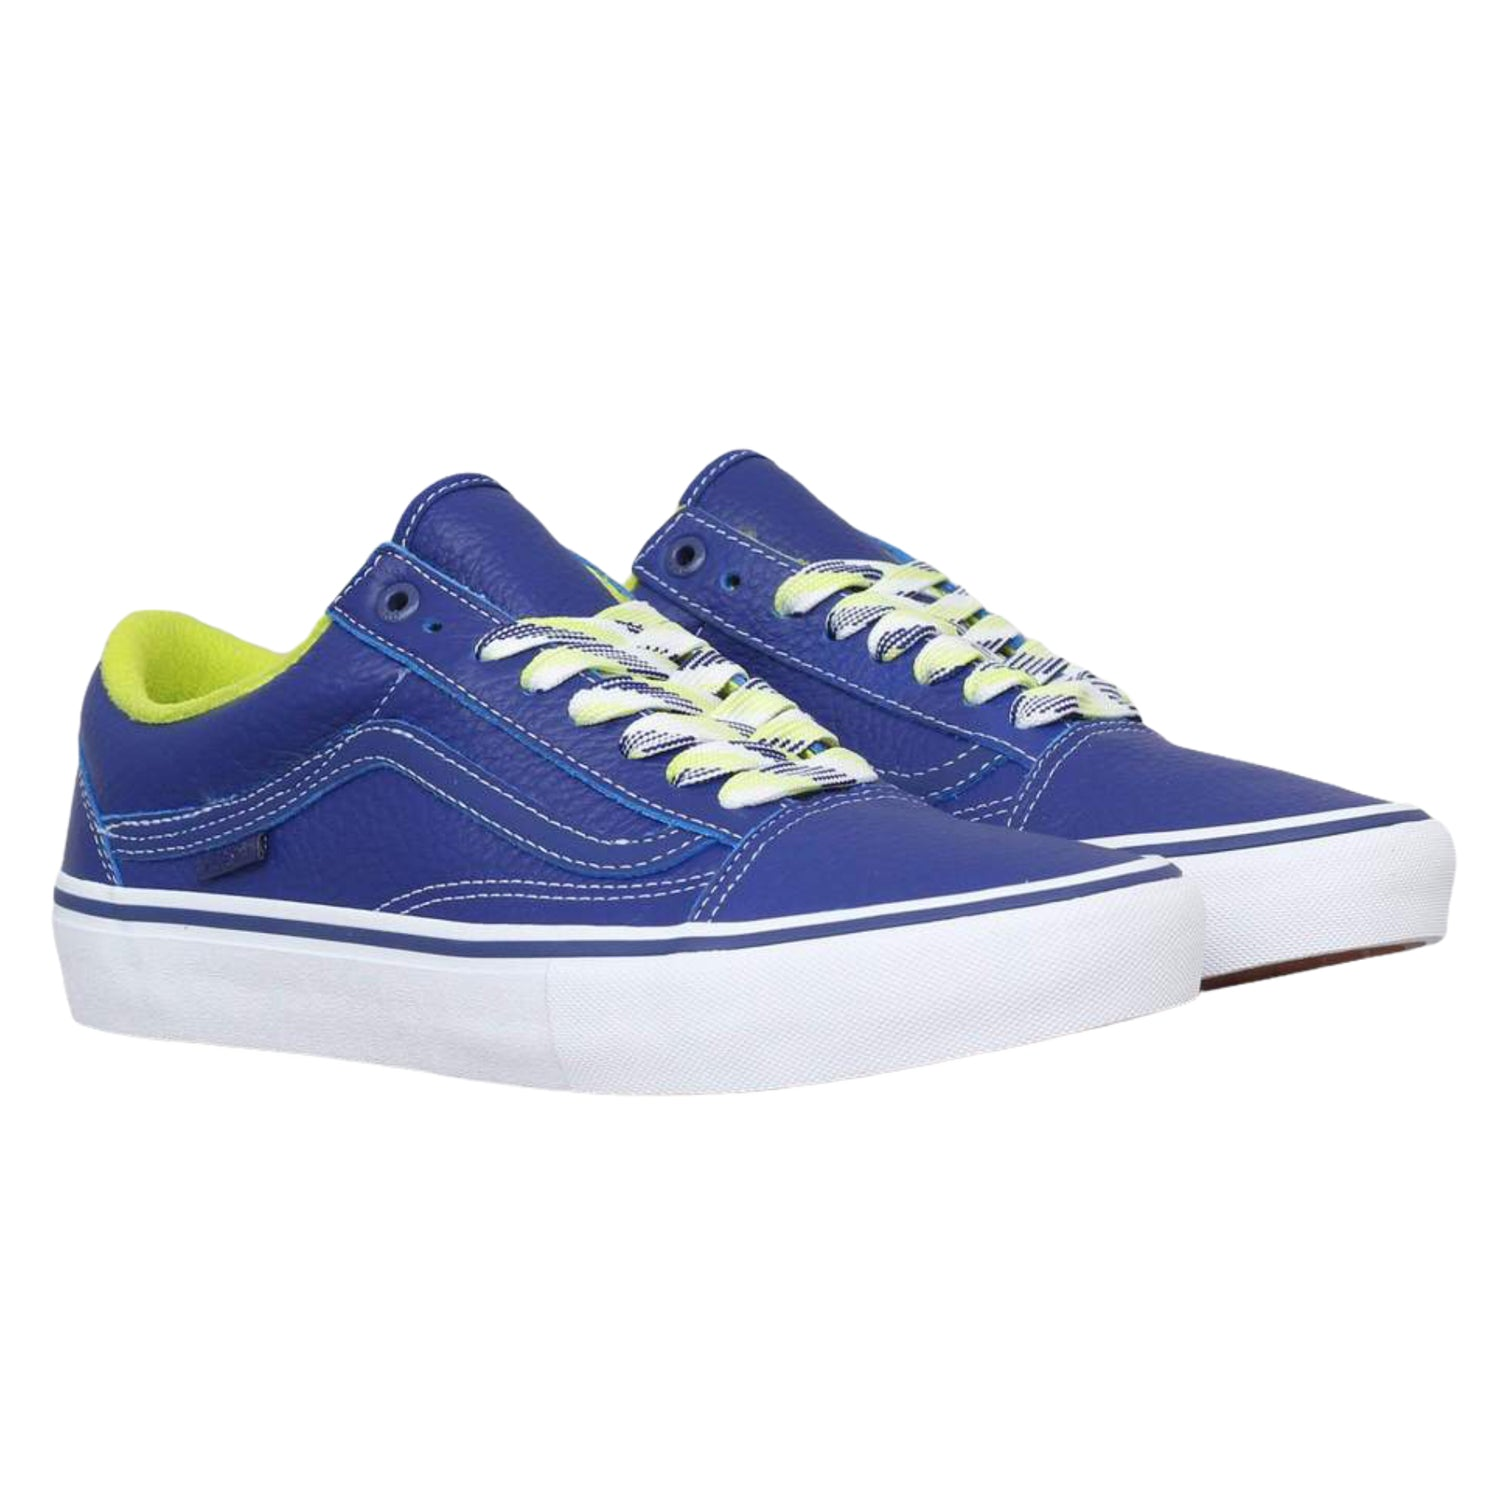 Vans Old Skool Pro LTD Quartersnacks